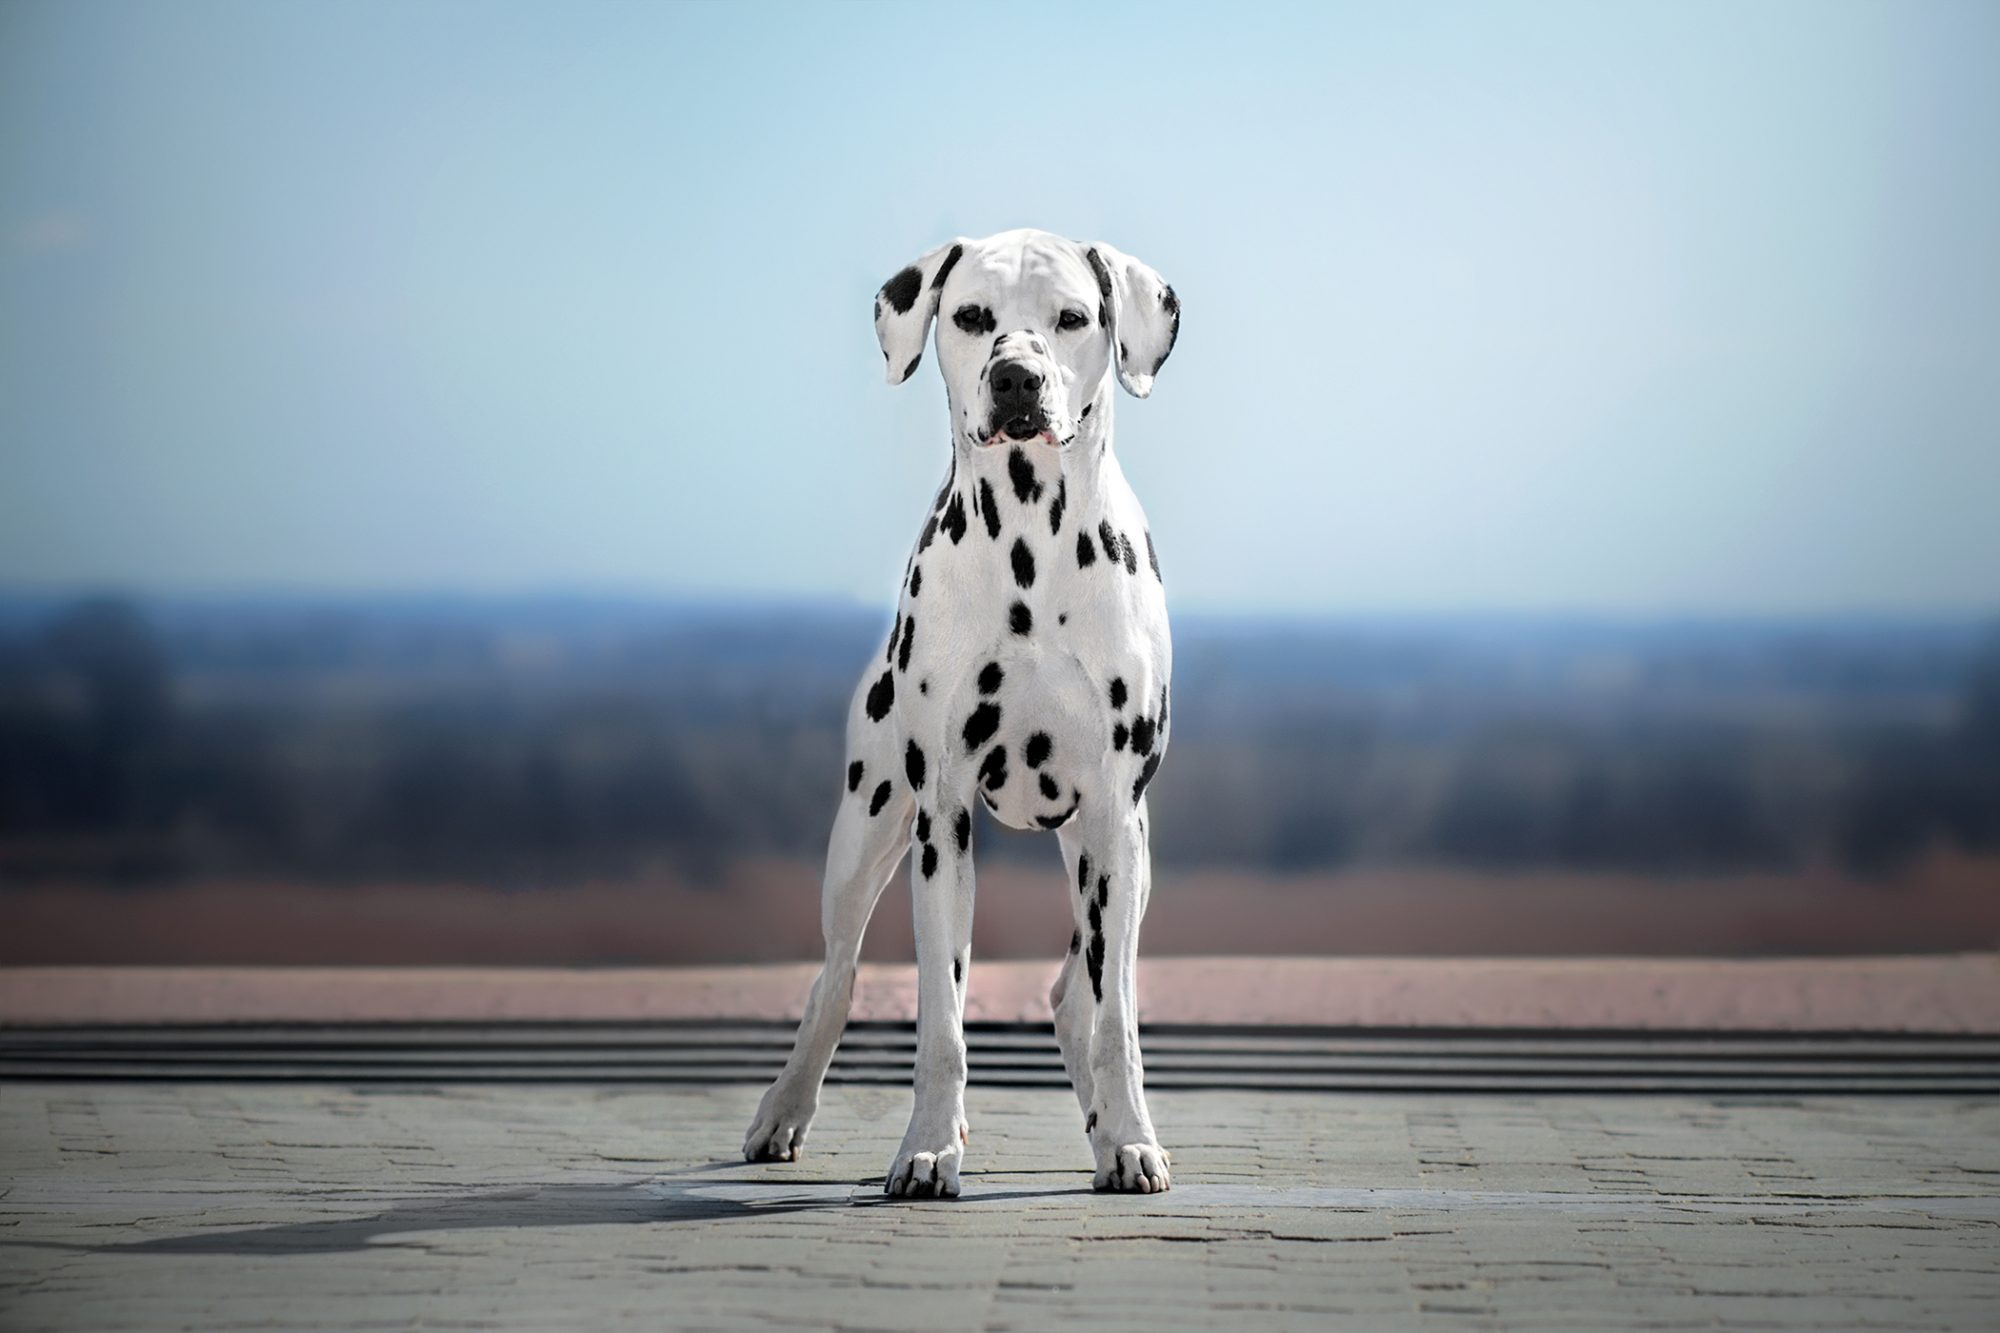 Dalmatian dog in front of blue sky